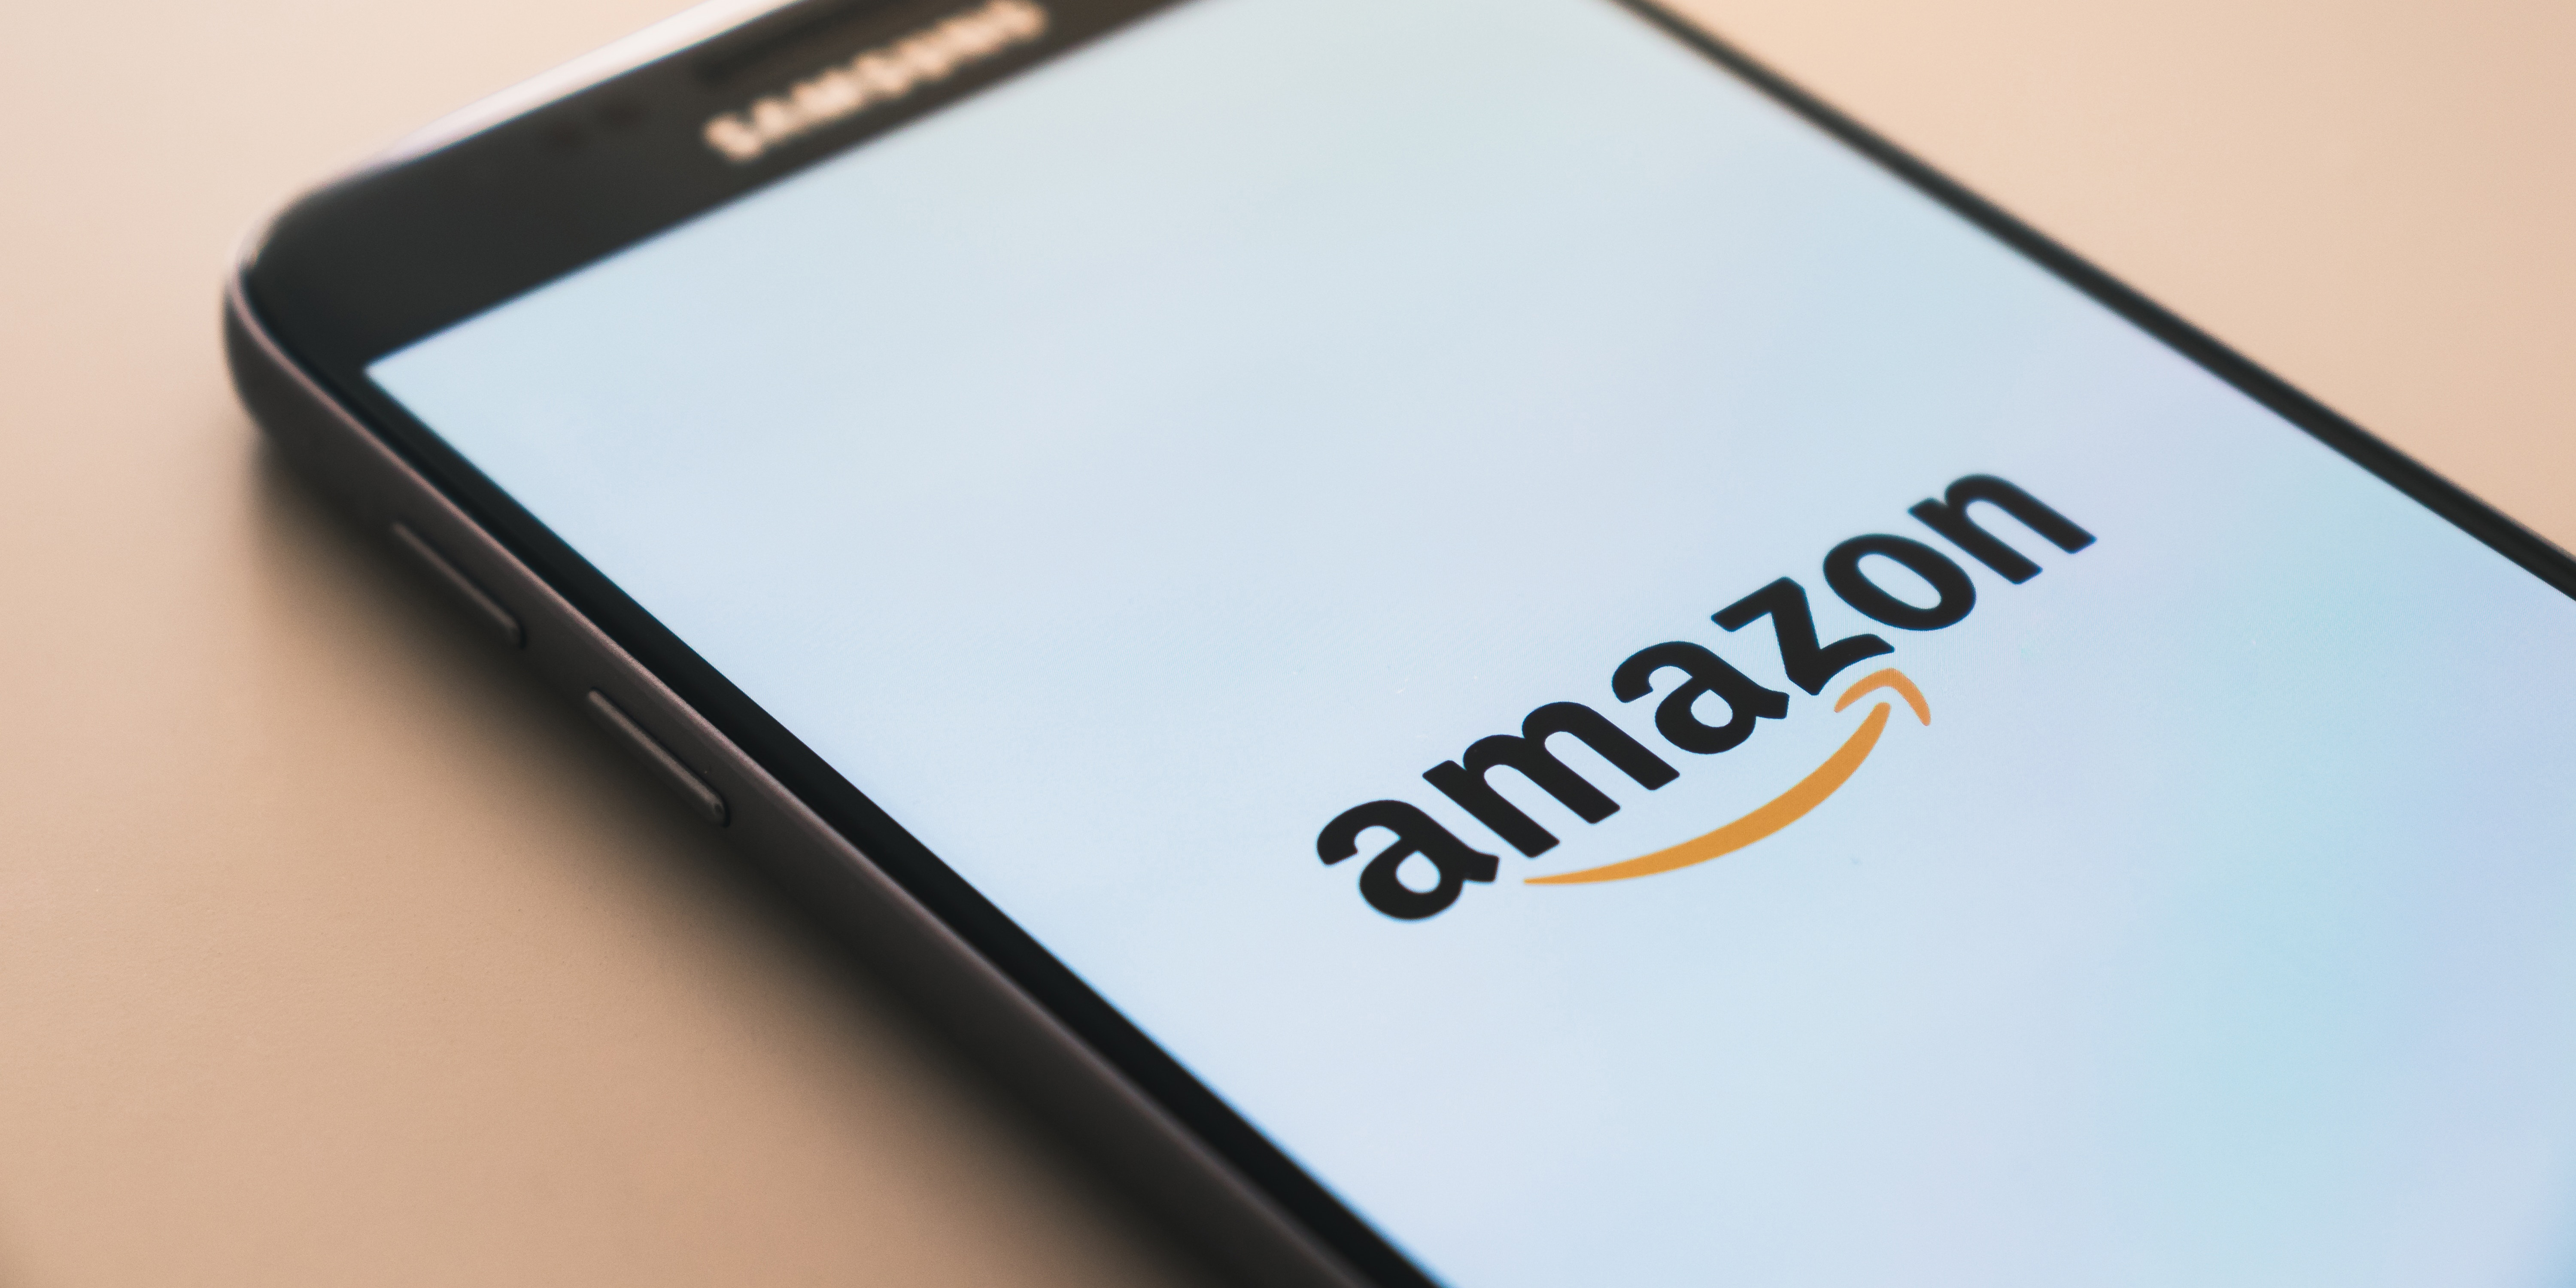 Amazon's logo on the screen of a black Samsung smart phone